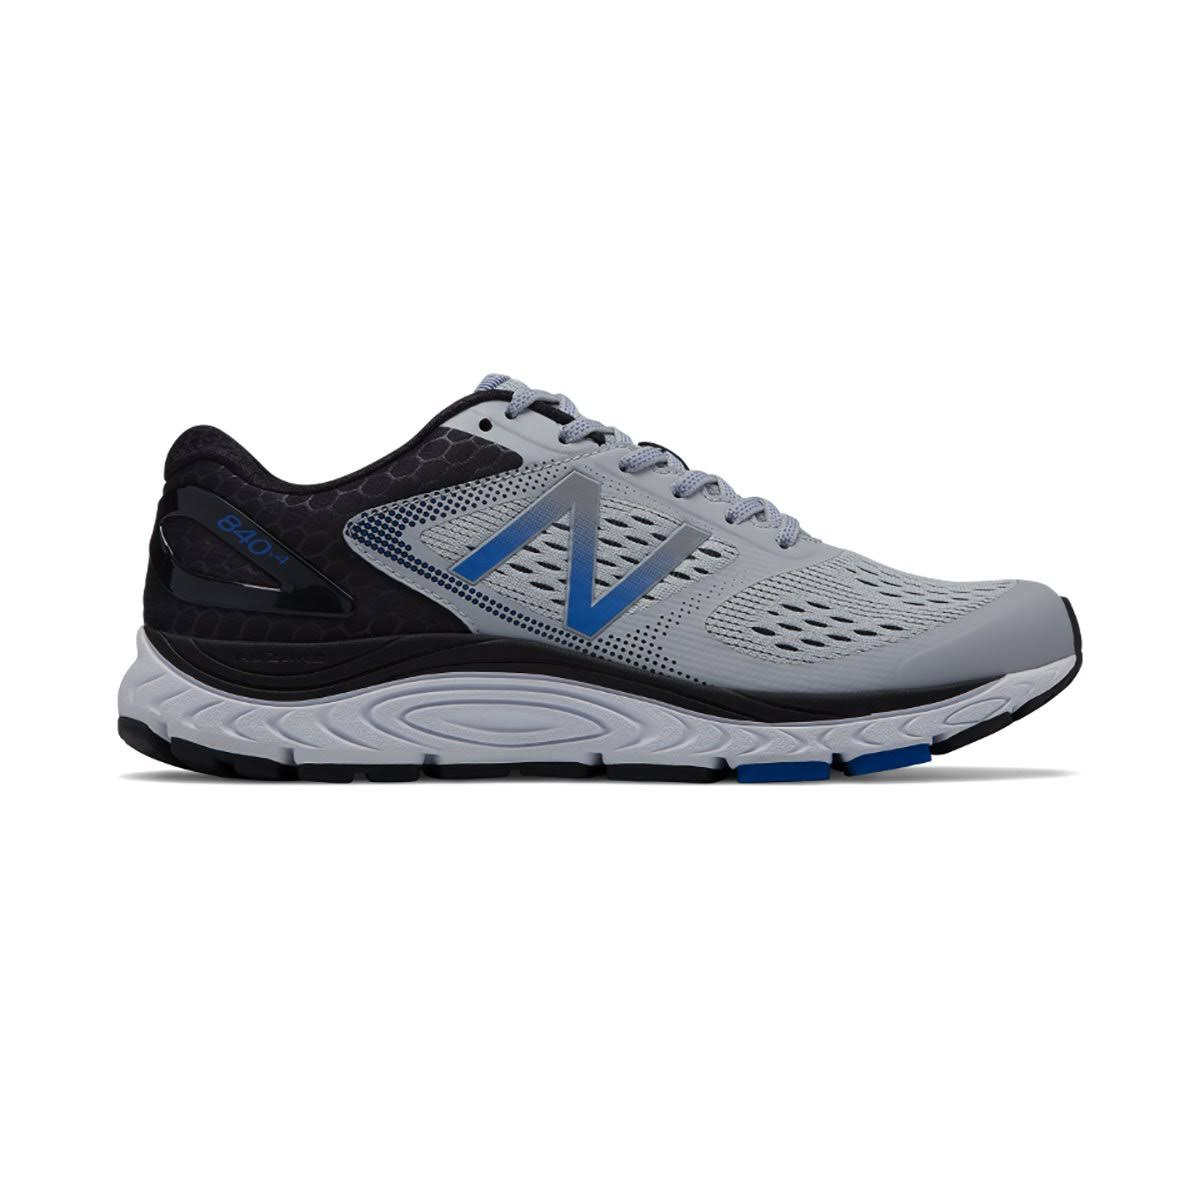 Men's New Balance 840v4 Running Shoes